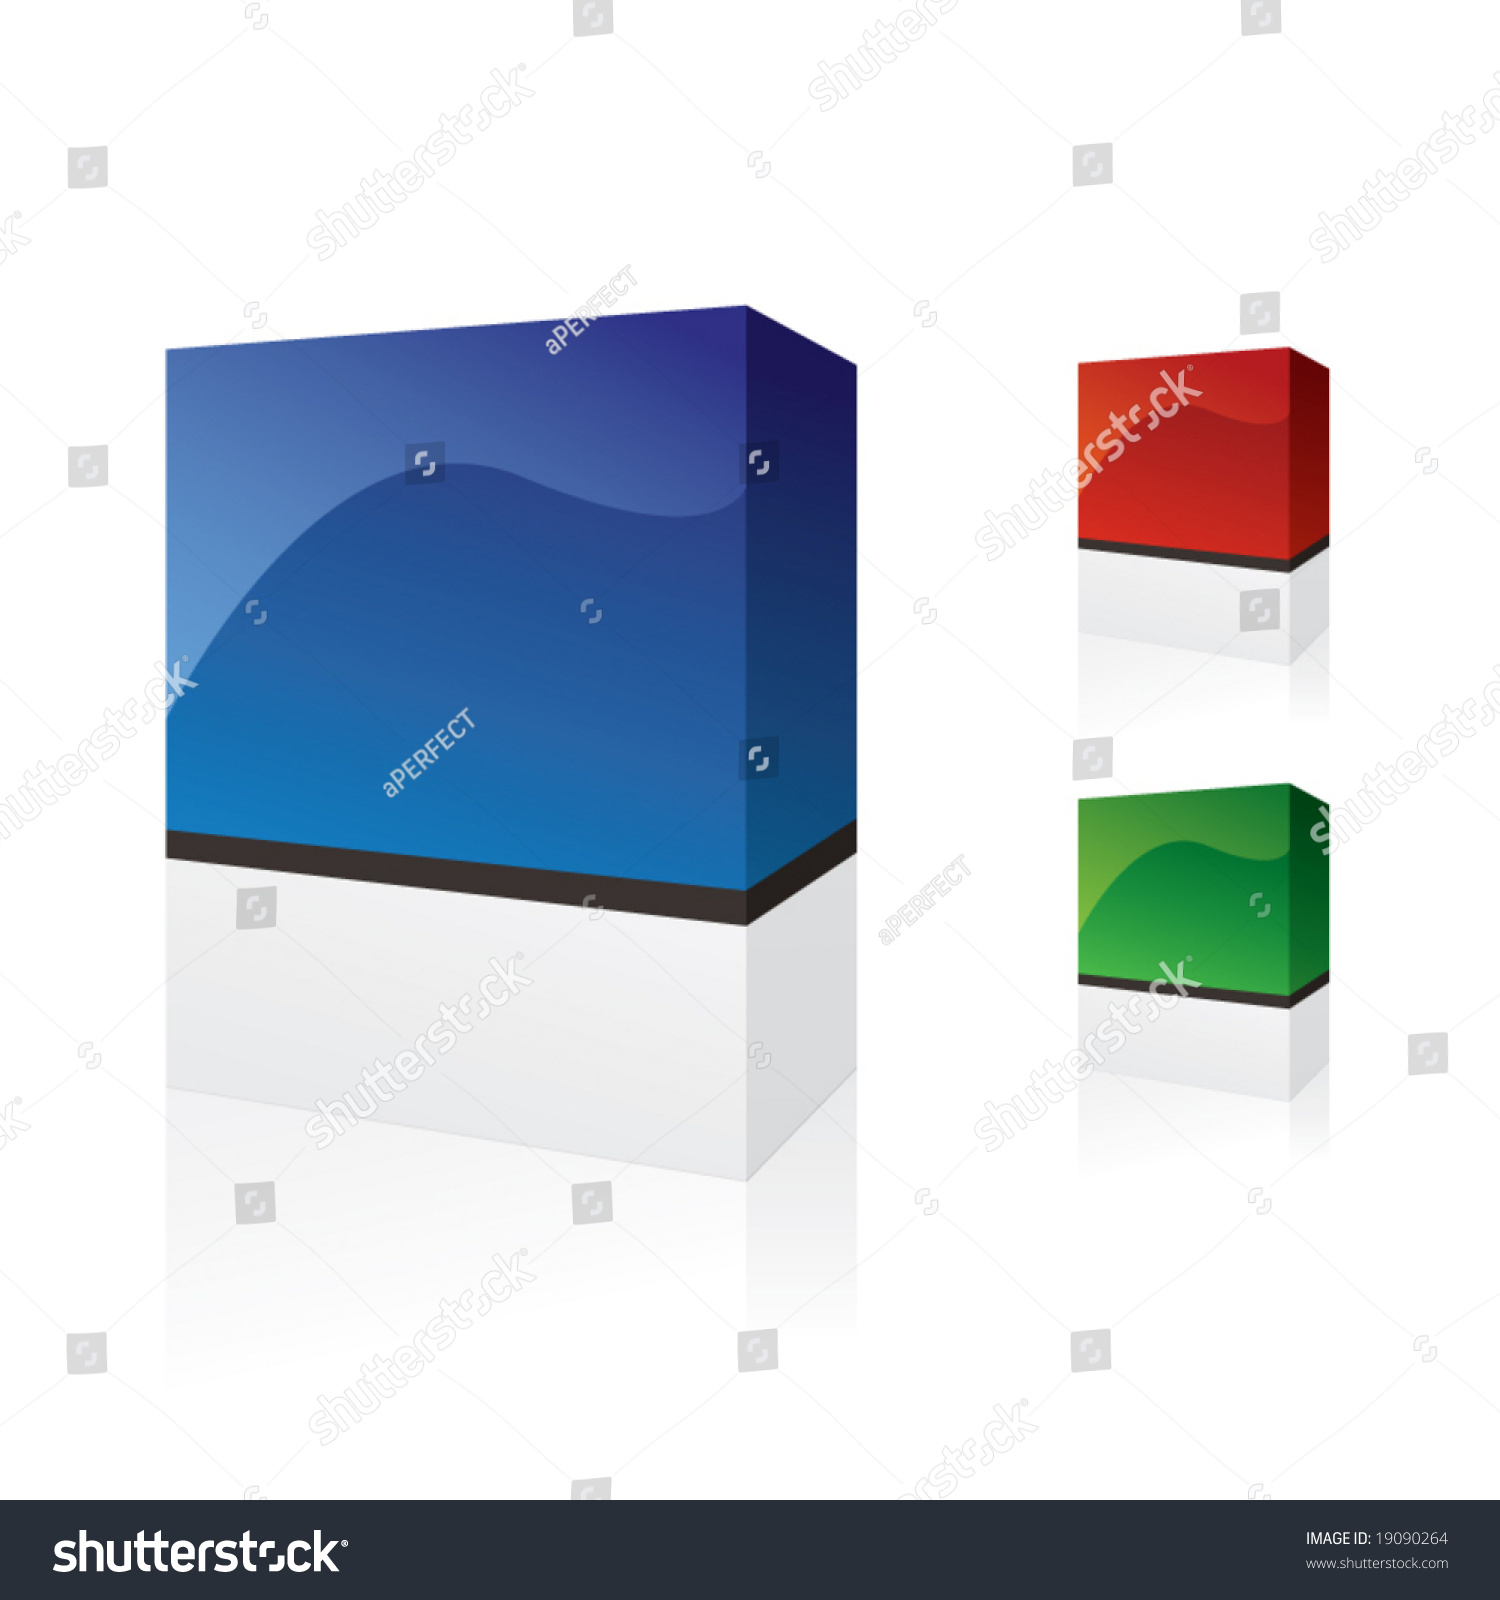 Software boxes stock vector illustration 19090264 Vector image software